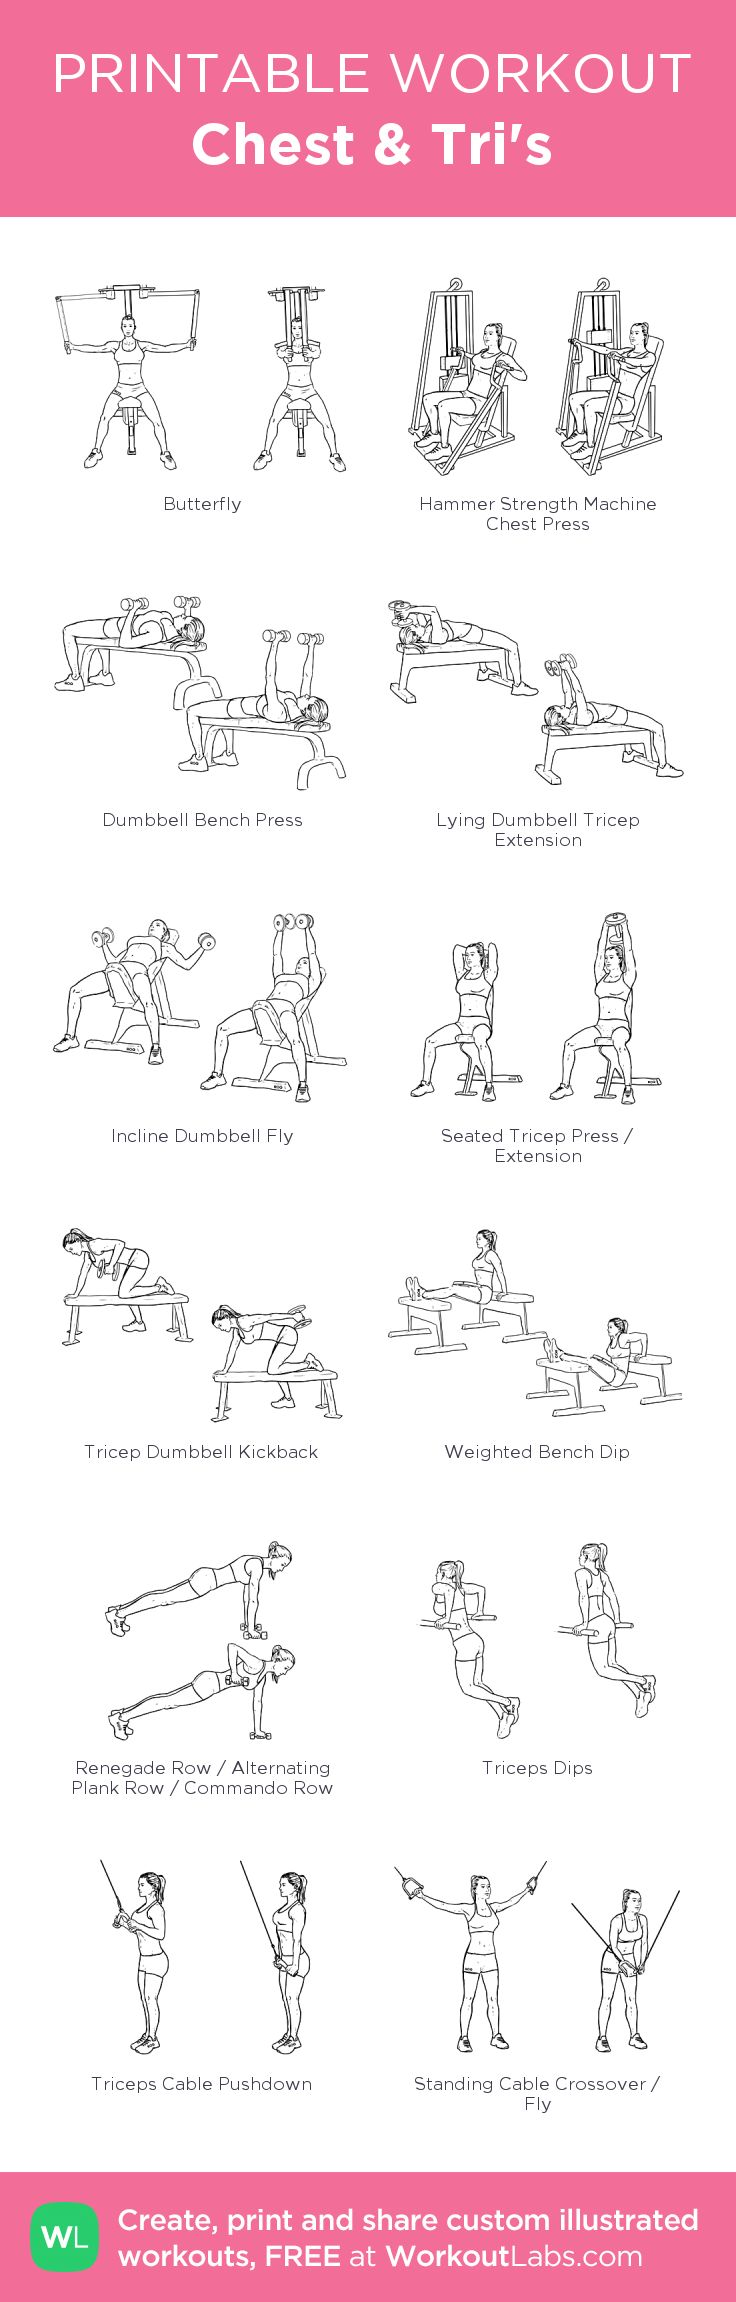 Chest & Tri's: my custom printable workout by @WorkoutLabs #workoutlabs #customworkout